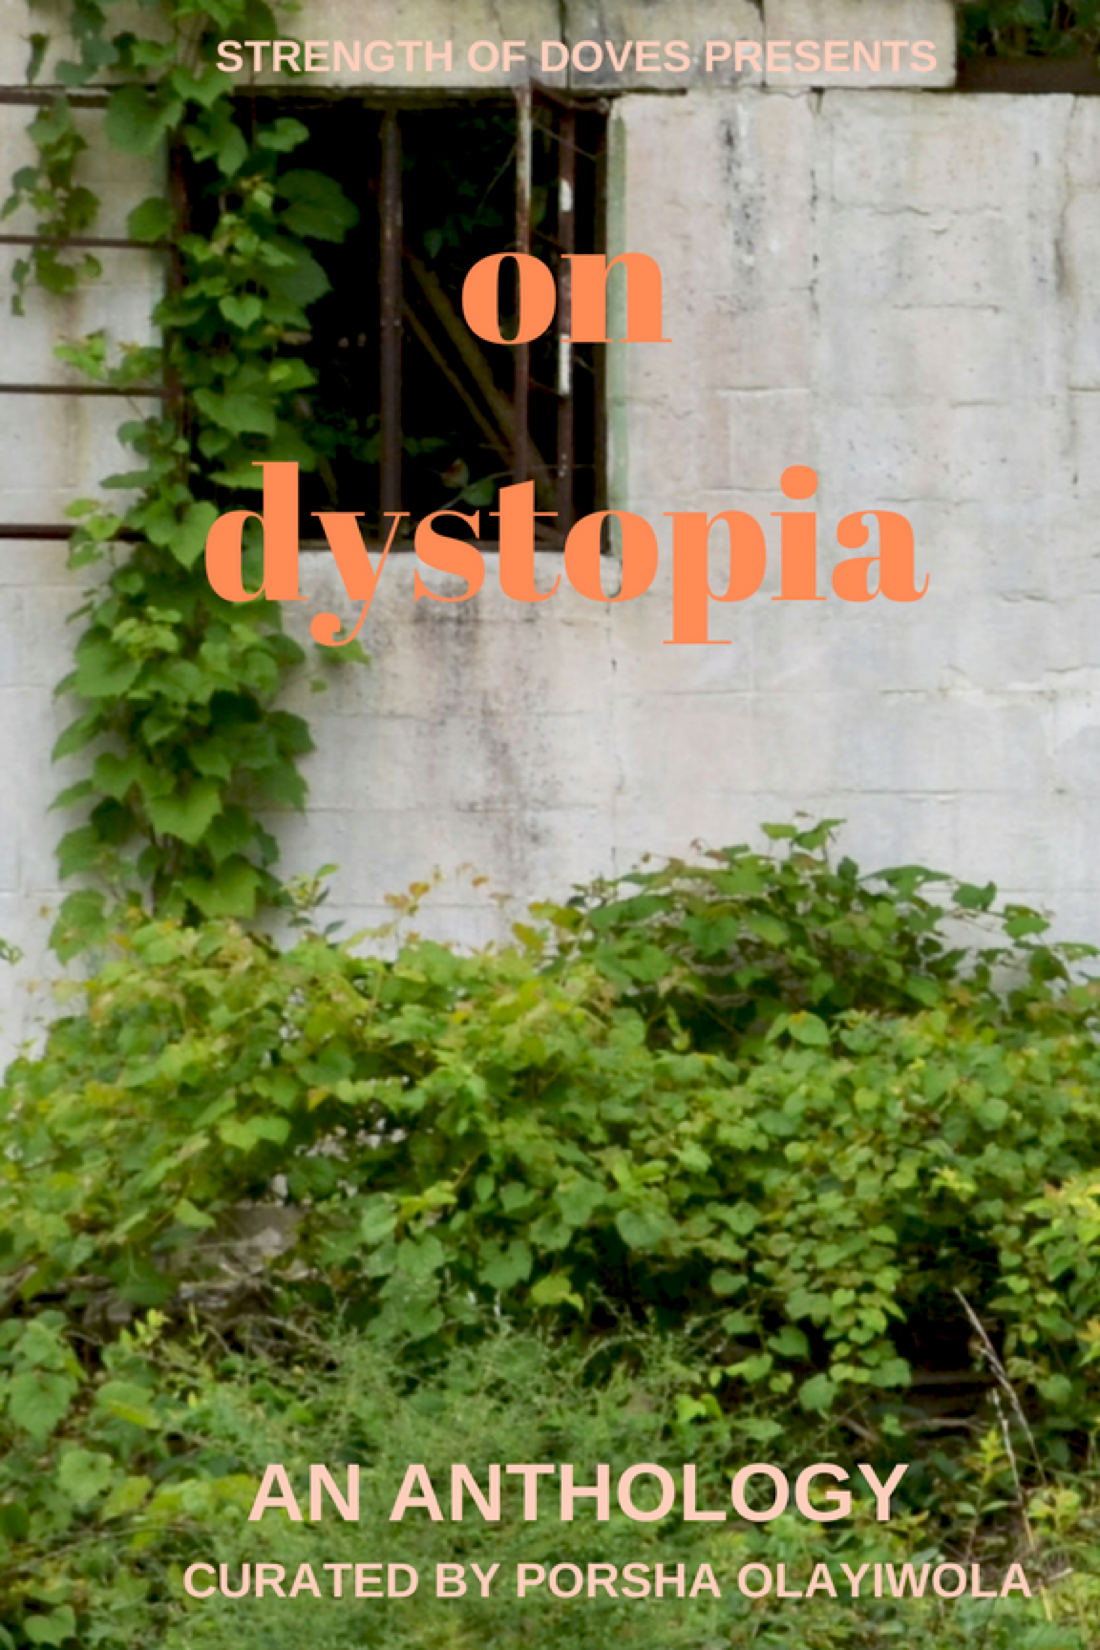 Anthology Bundle: On Dystopia & On Finding Joy